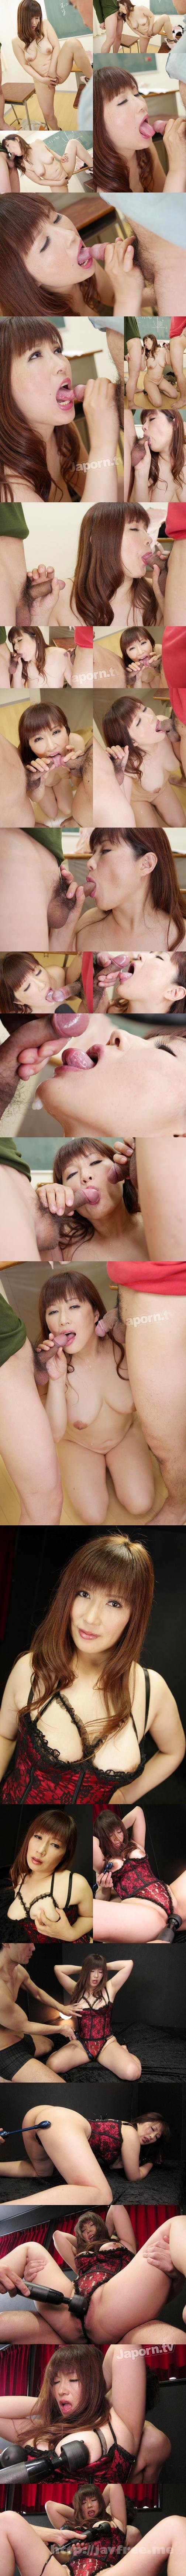 [HD][SKY-263] 好色妻降臨 Vol.38 : 志村玲子 - image SKY-263_2 on https://javfree.me